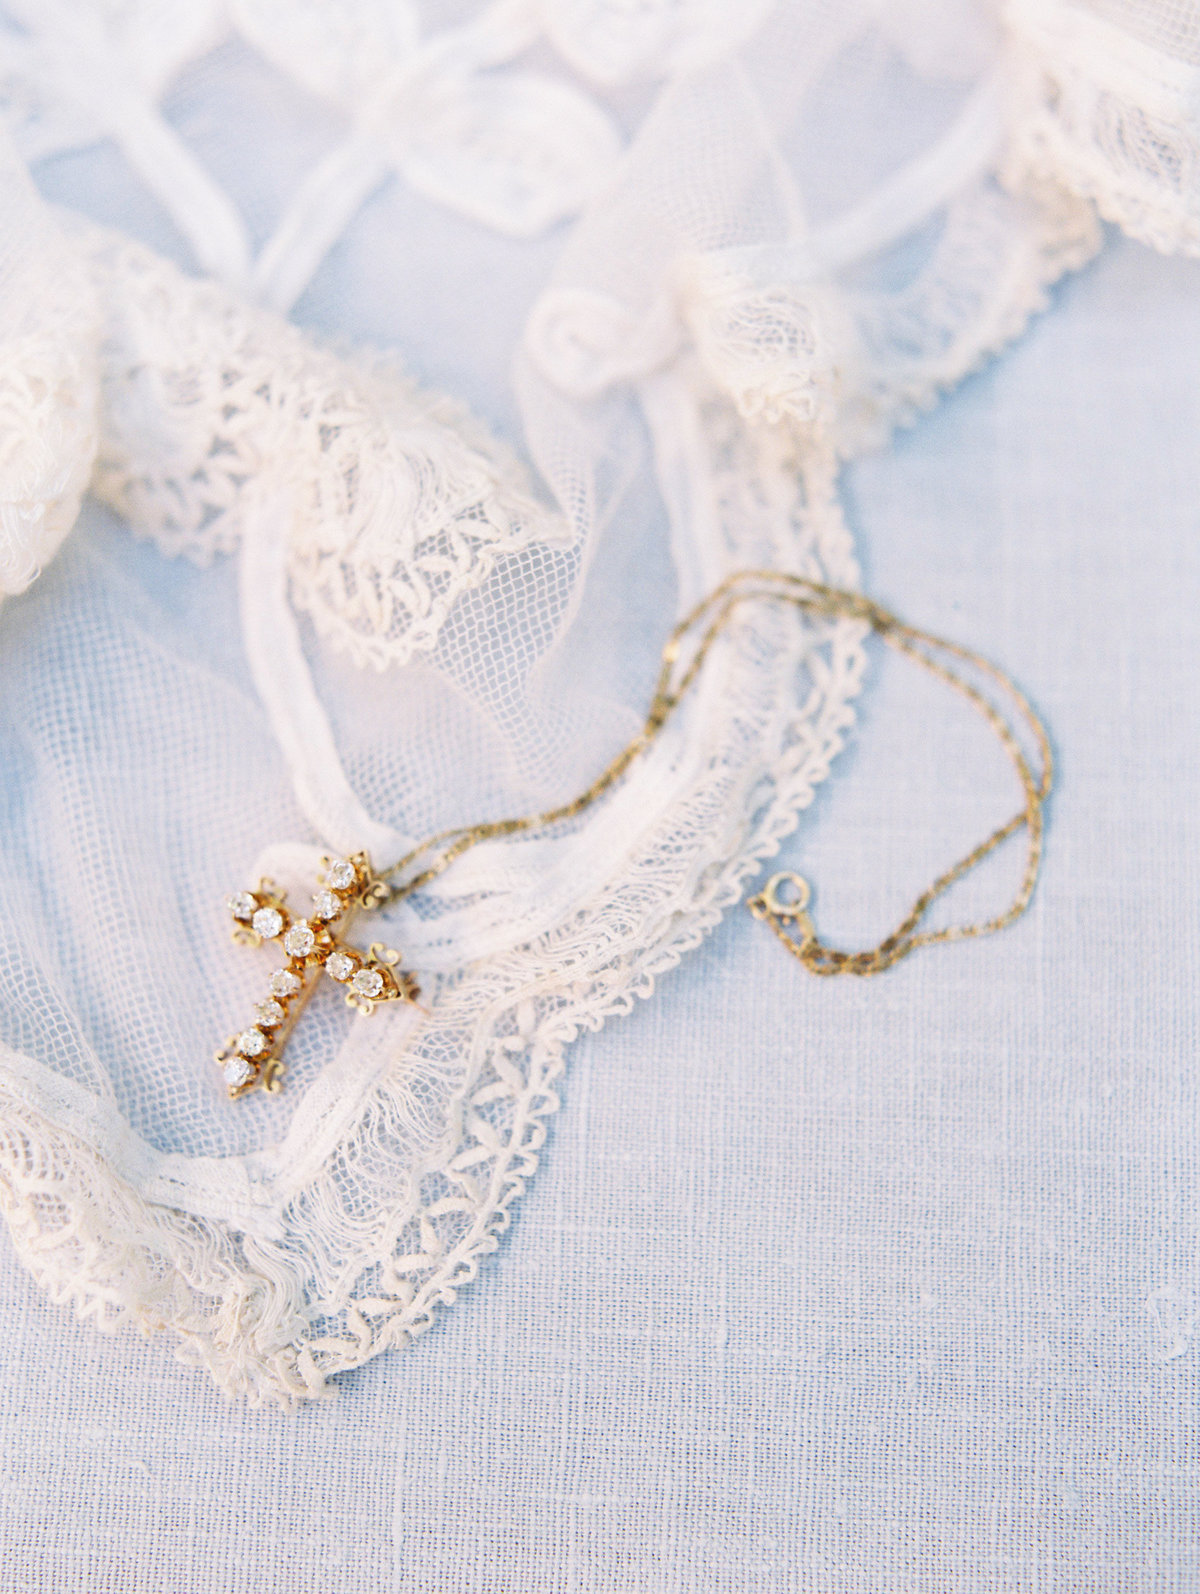 heirloom necklace and wedding veil